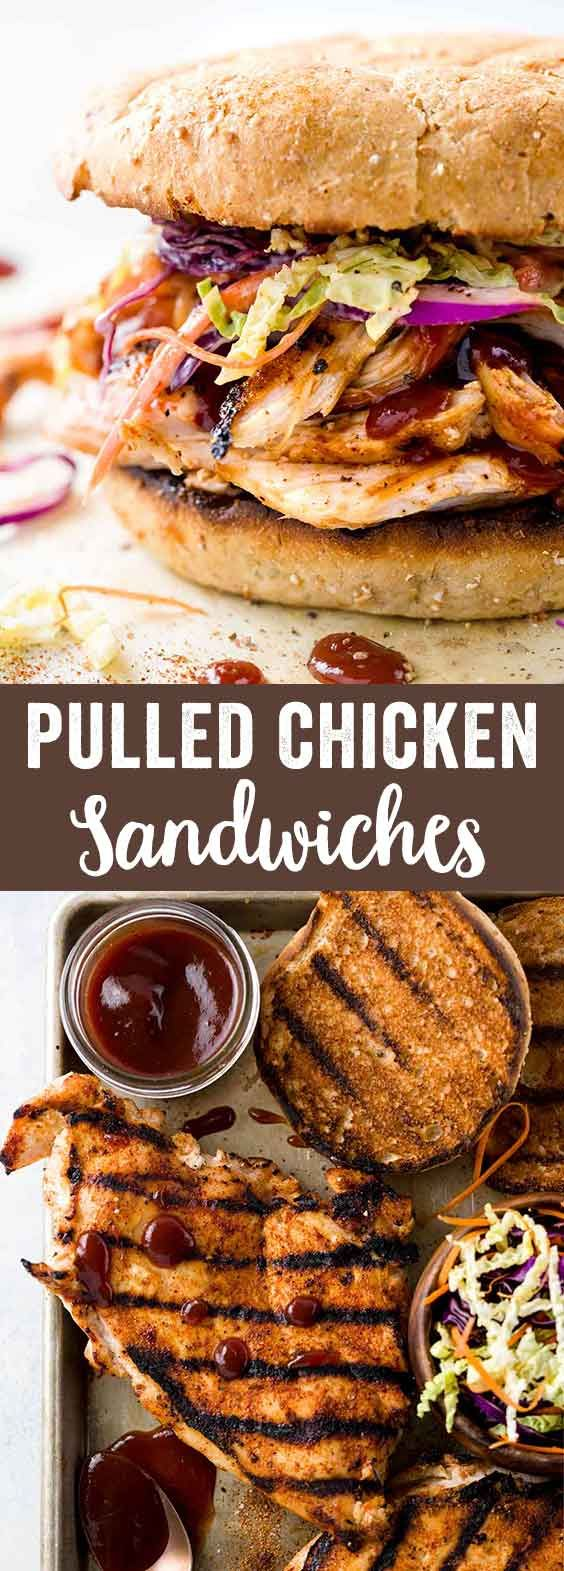 Pulled chicken sandwiches with crunchy homemade coleslaw is an easy grilled recipe. Tender white meat tossed in a tangy barbecue sauce and served on a toasted bun for the ultimate handheld meal! via @foodiegavin